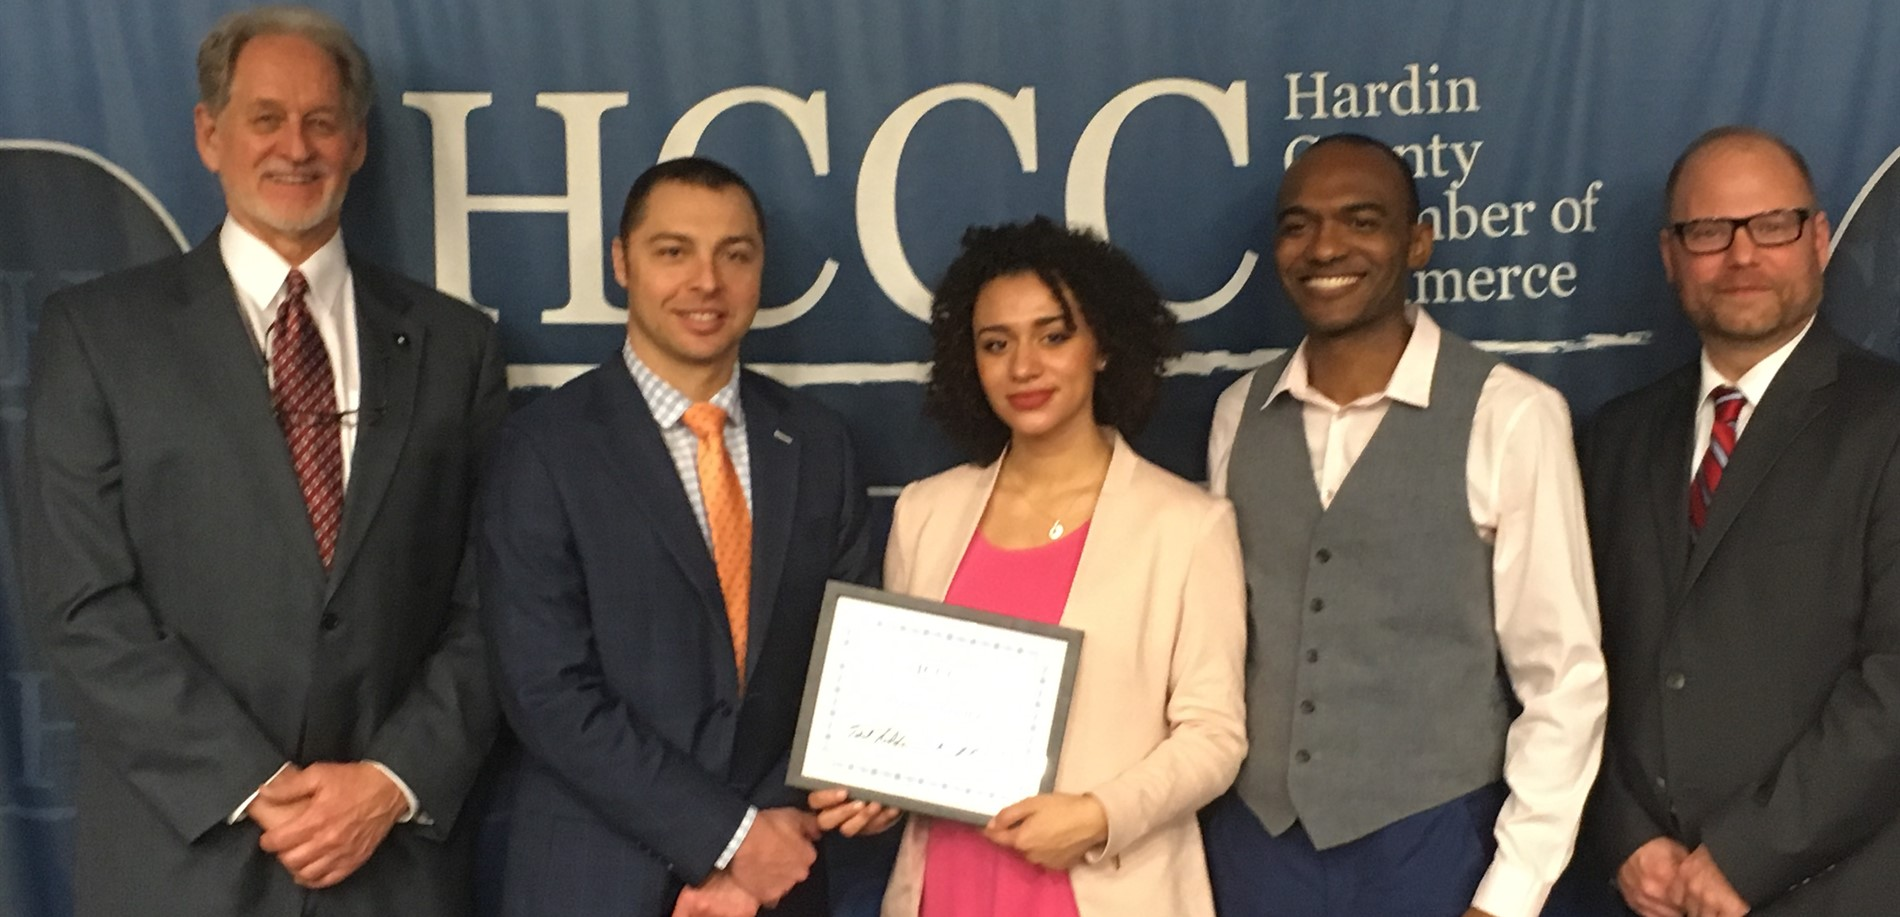 North Hardin High School student Ellyanna Gomez was honored as the ABC Student of the Month at the Hardin County Chamber of Commerce Luncheon.